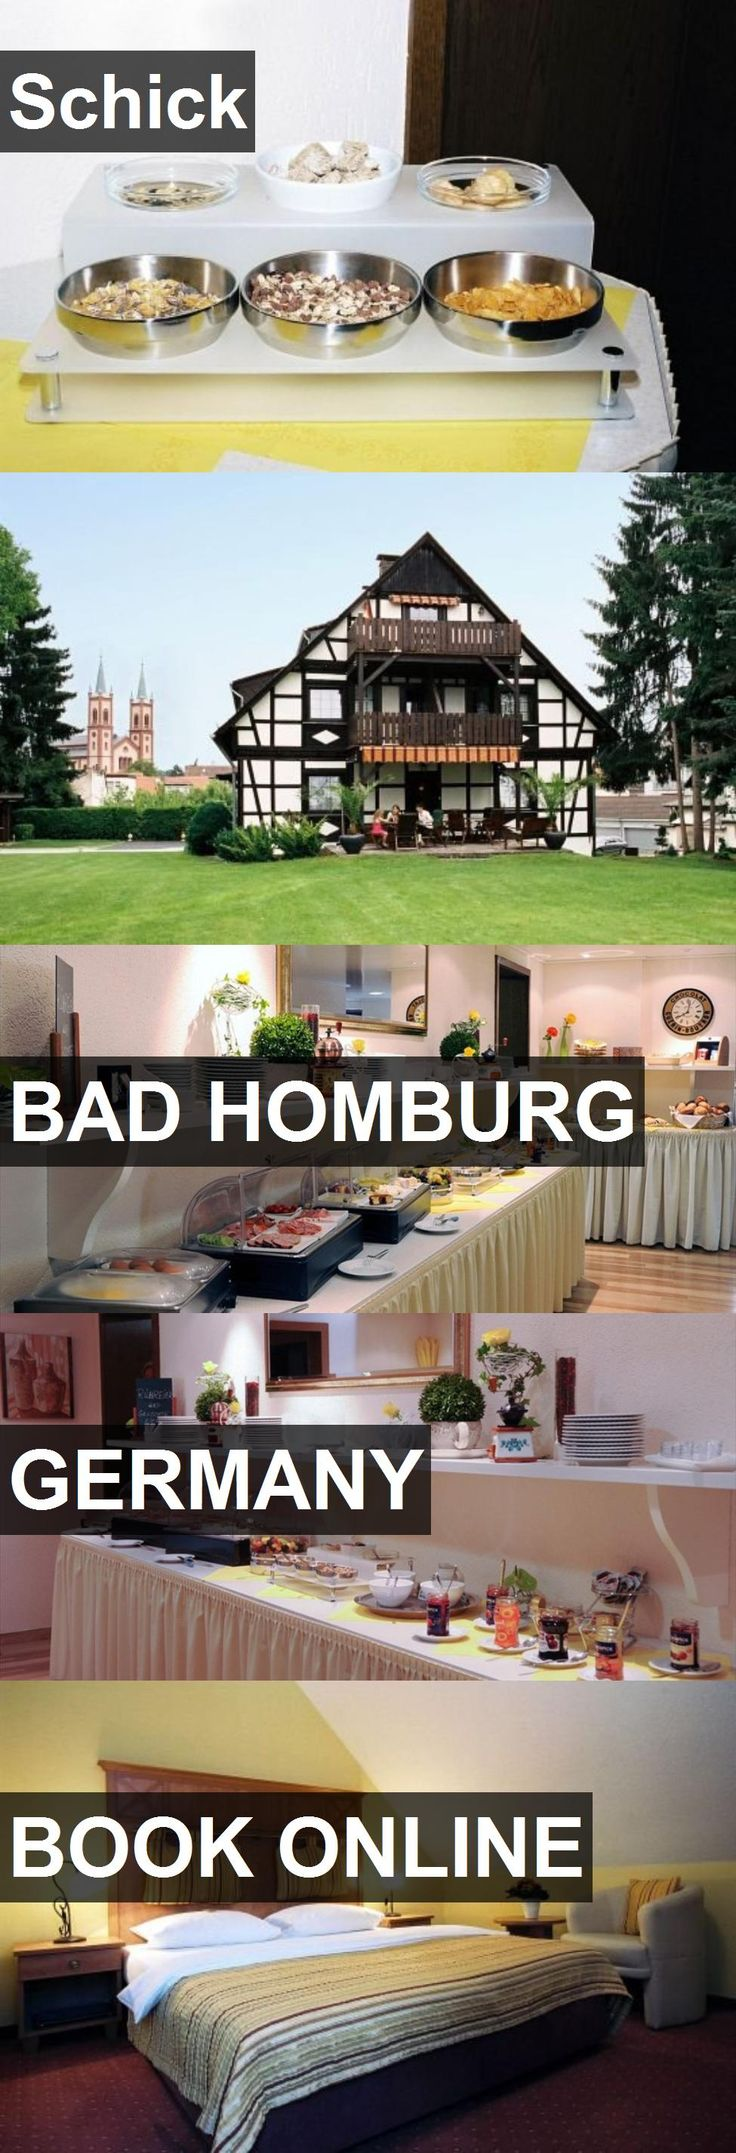 Hotel Schick in Bad Homburg, Germany. For more information, photos, reviews and best prices please follow the link. #Germany #BadHomburg #Schick #hotel #travel #vacation